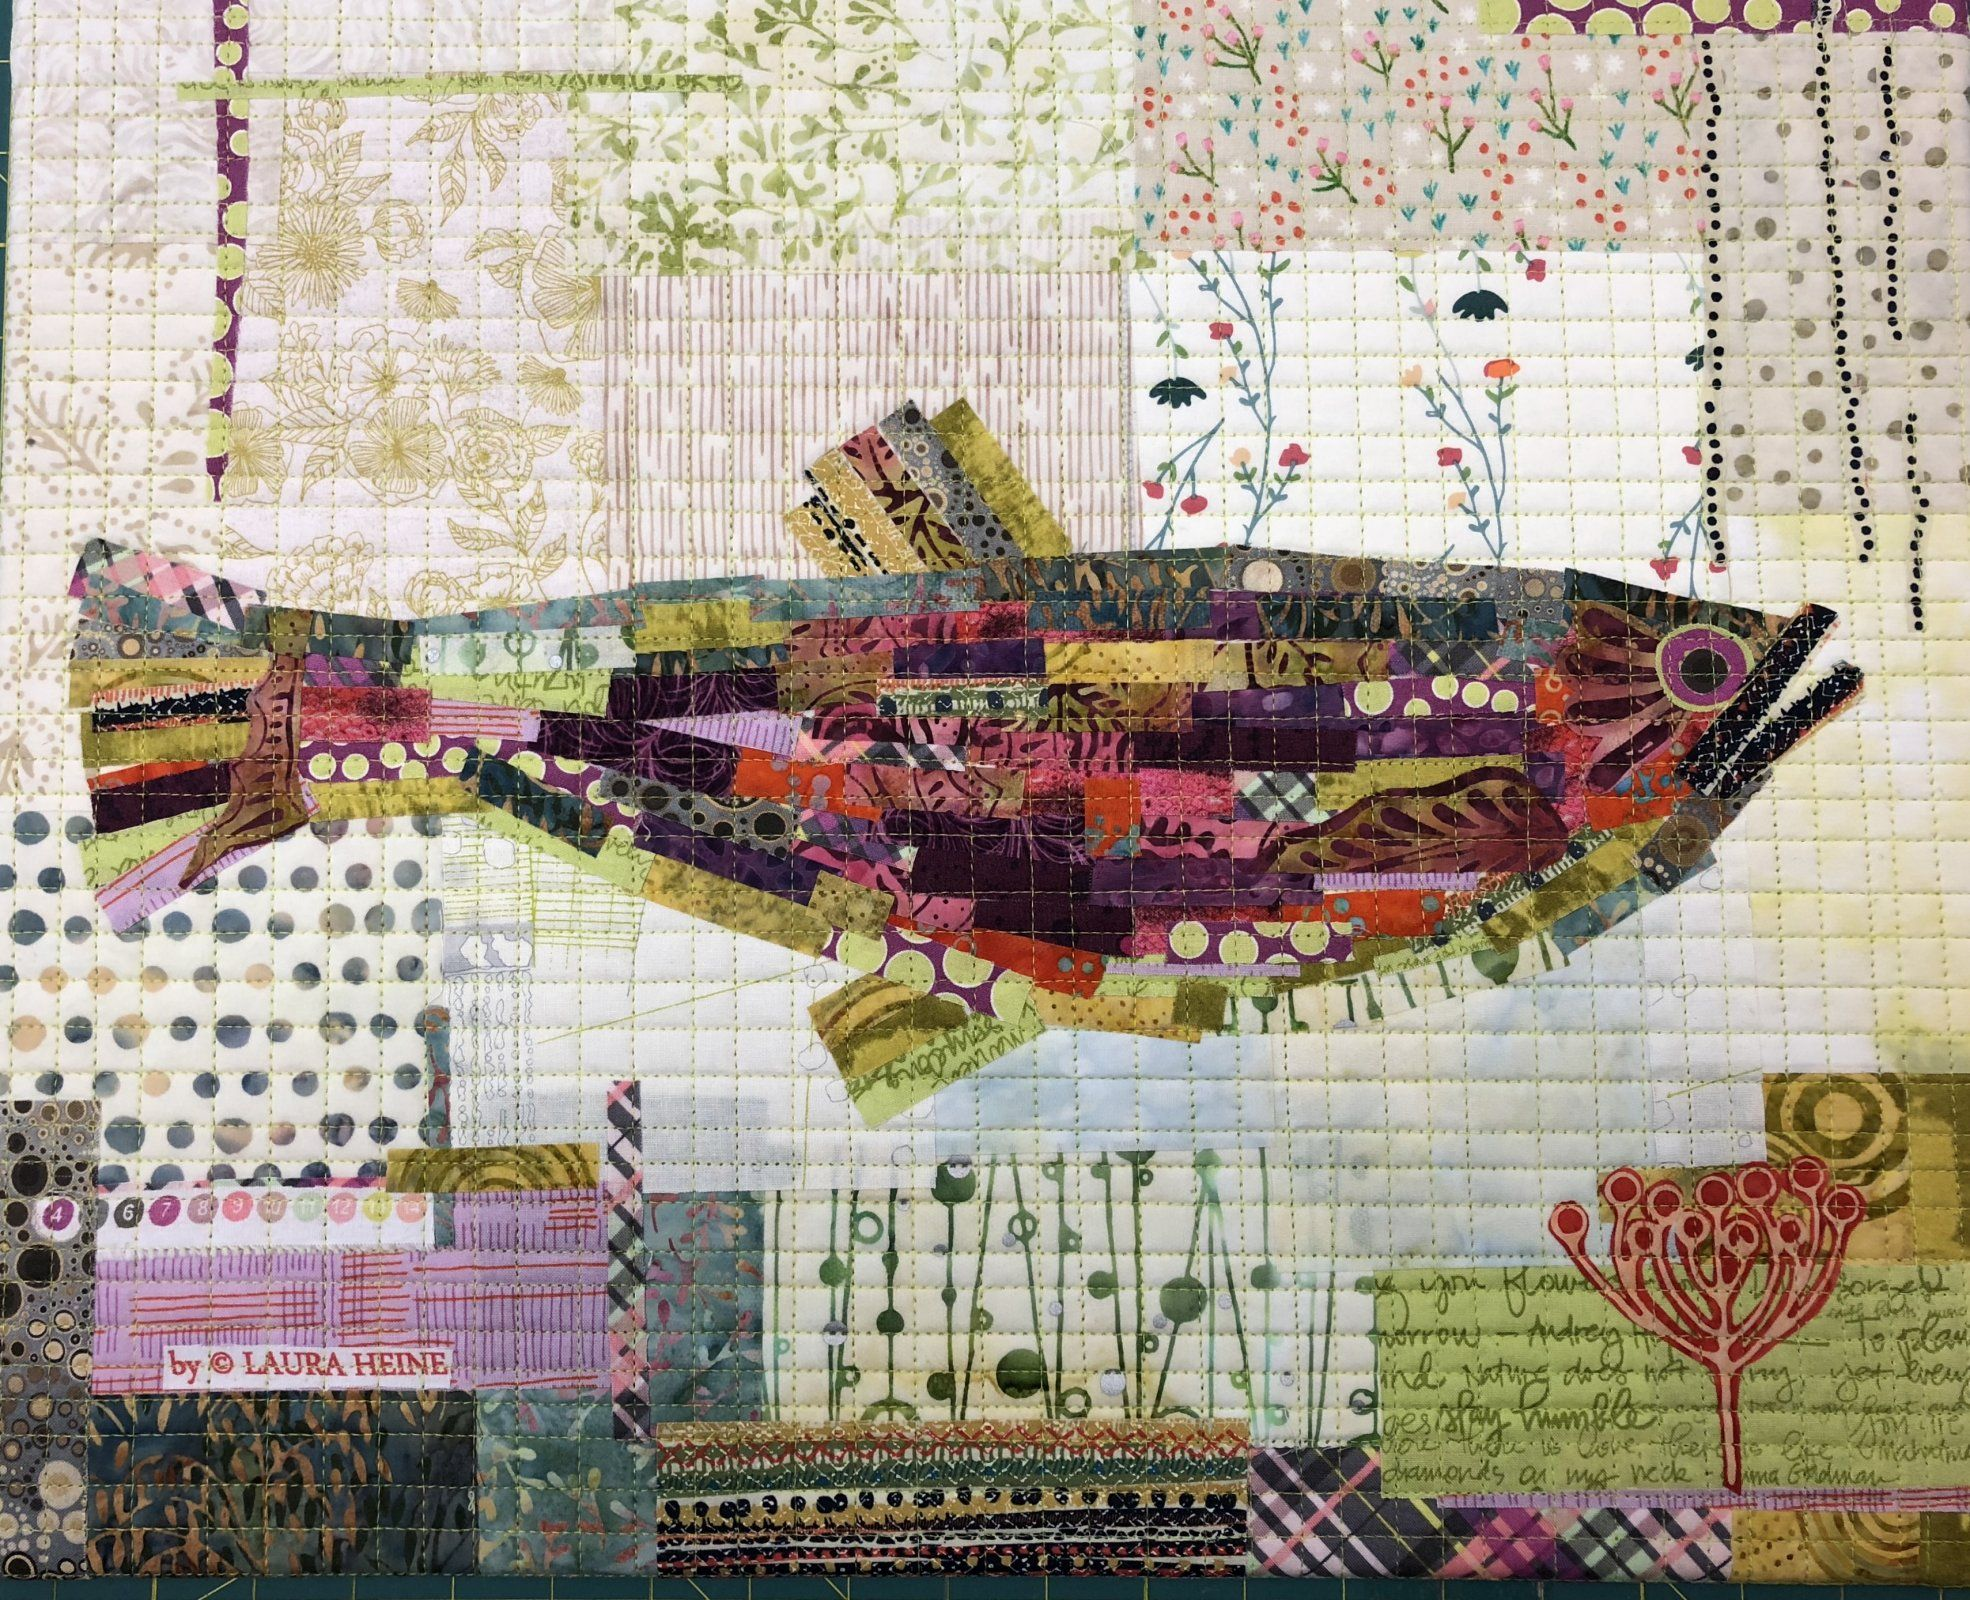 Teeny Tiny Collage Quilt Patterns Group #2 By Laura Heine of Fiberworks